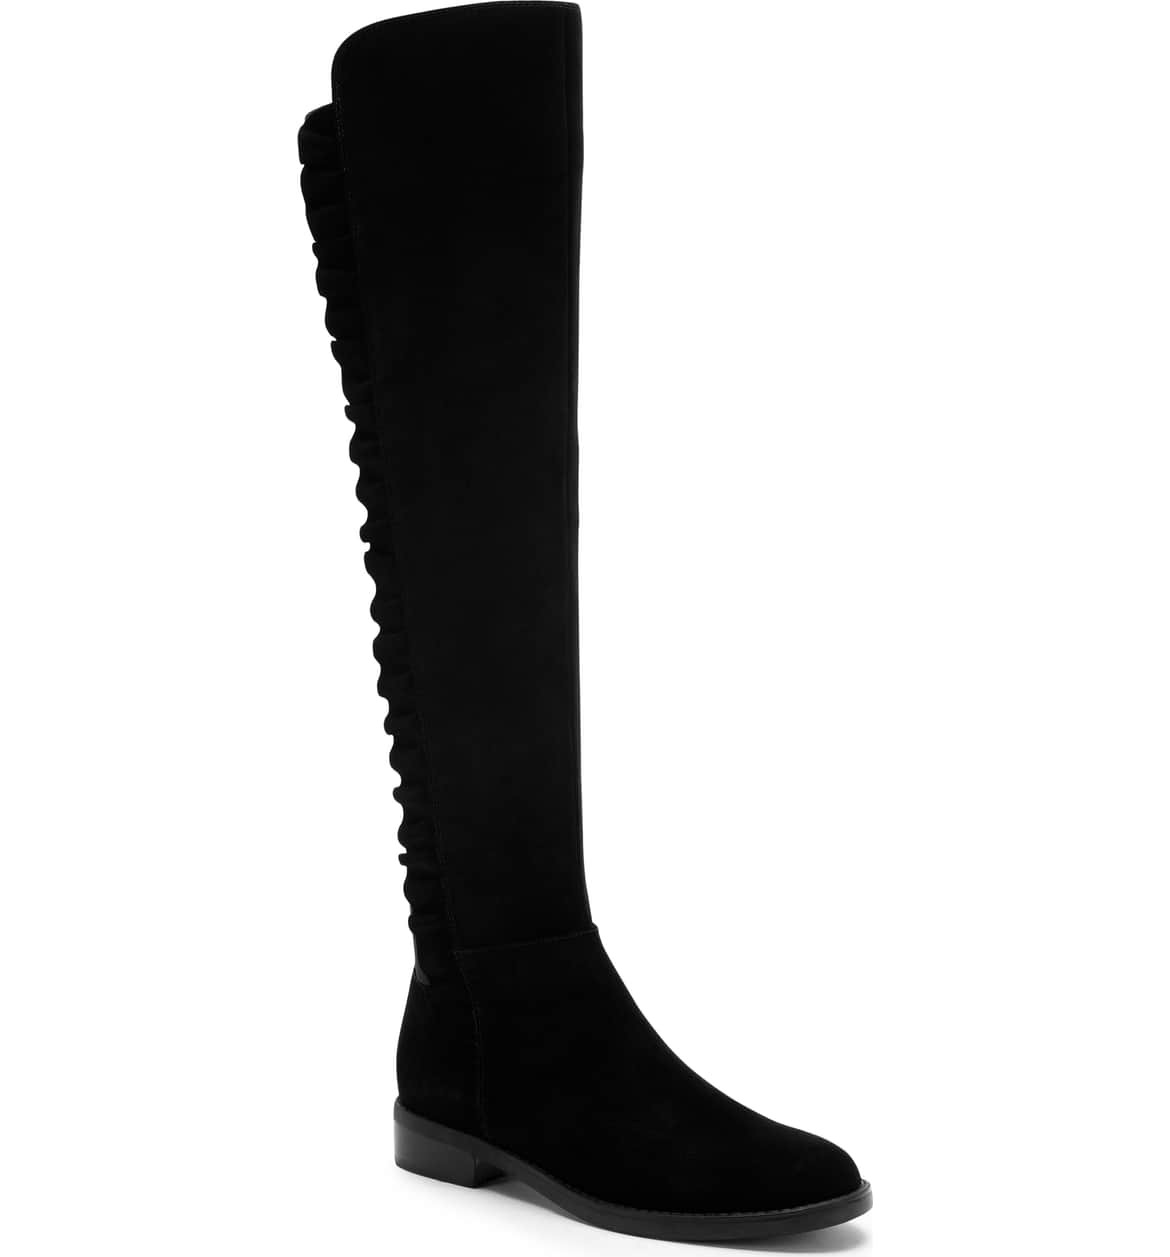 These Waterproof Over-The-Knee Boots